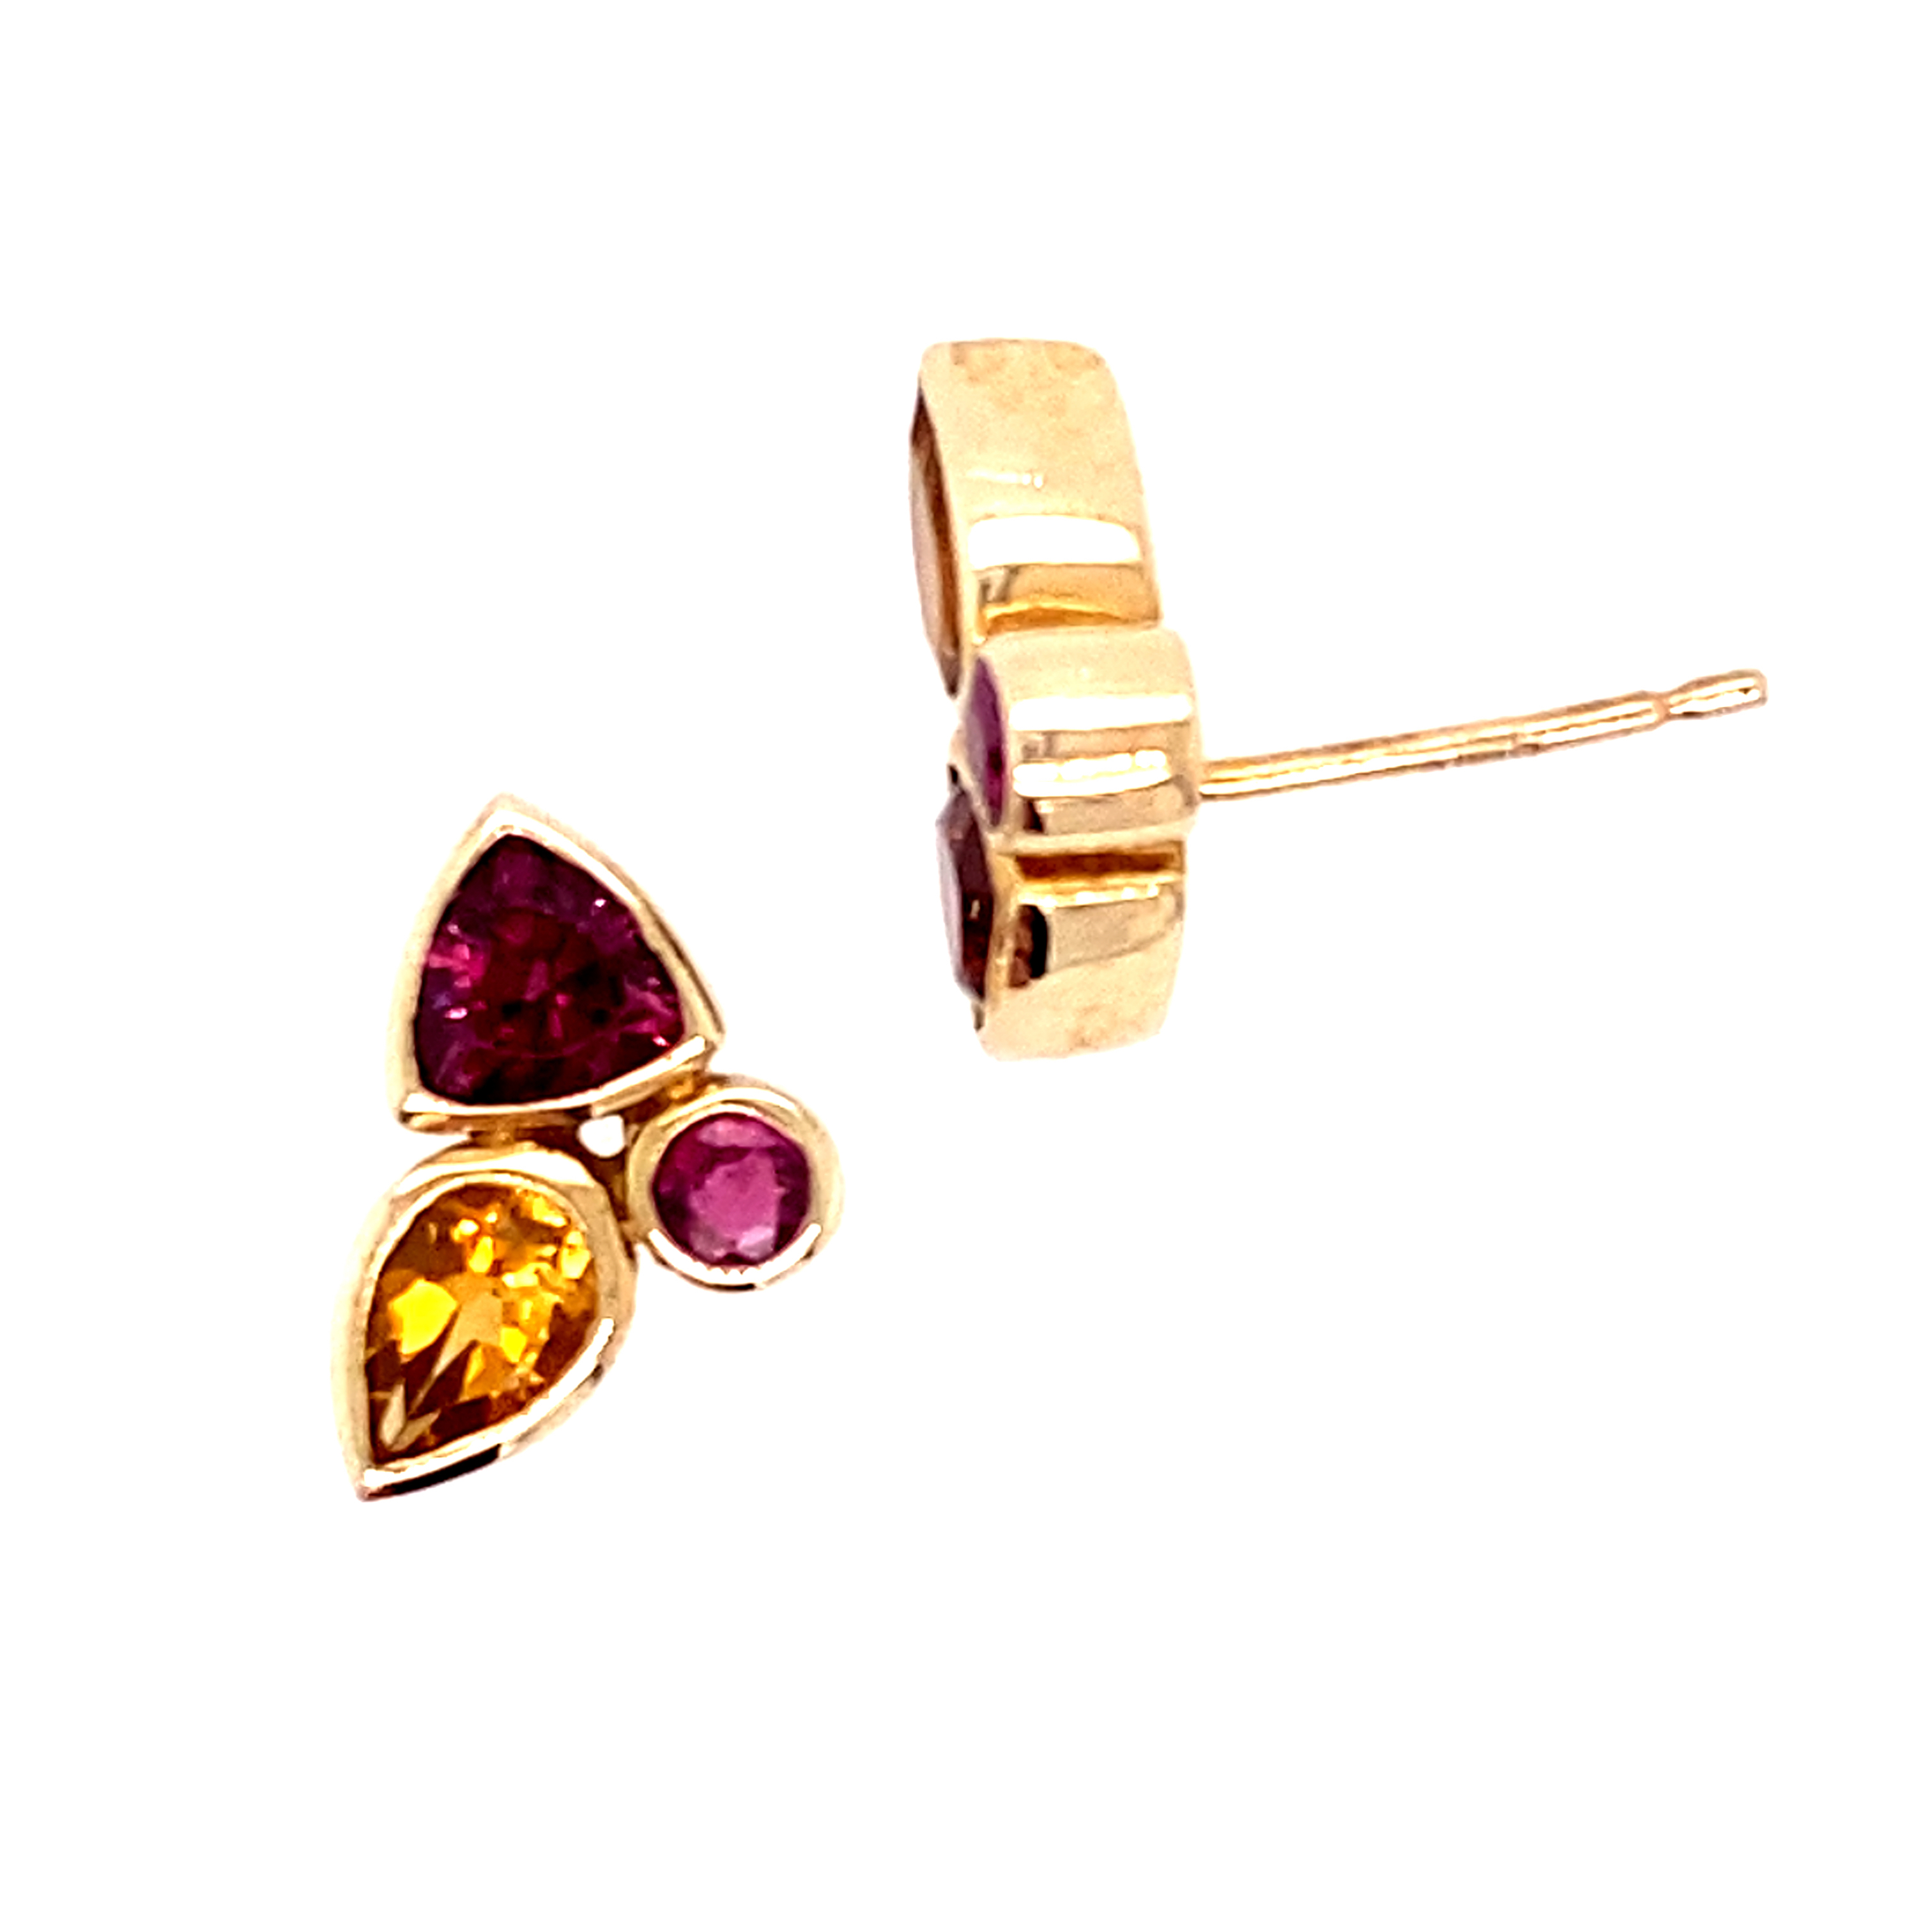 9 Carat Yellow Gold Studs with Rubies, rhodolite garnet and cit